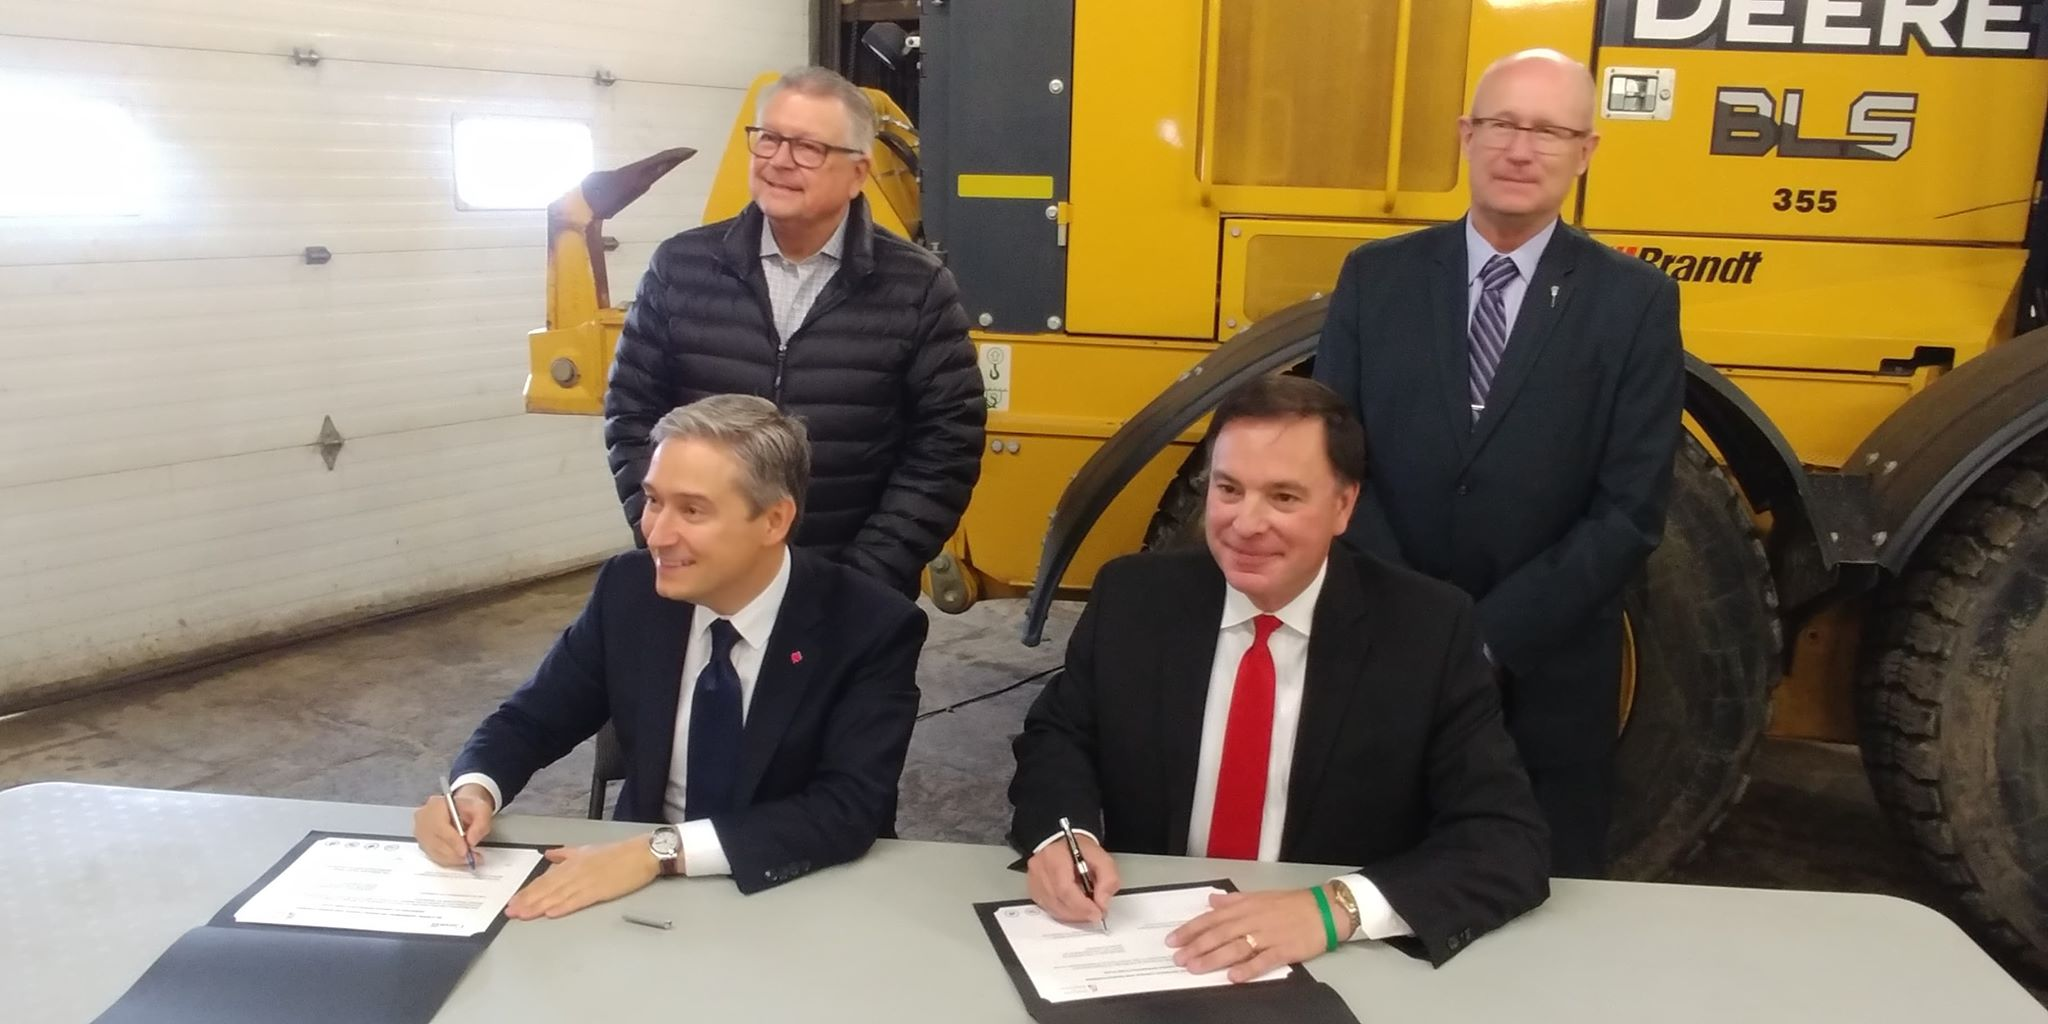 Government of Canada invests close to $900 Million in Saskatchewan infrastructure over next 10 years